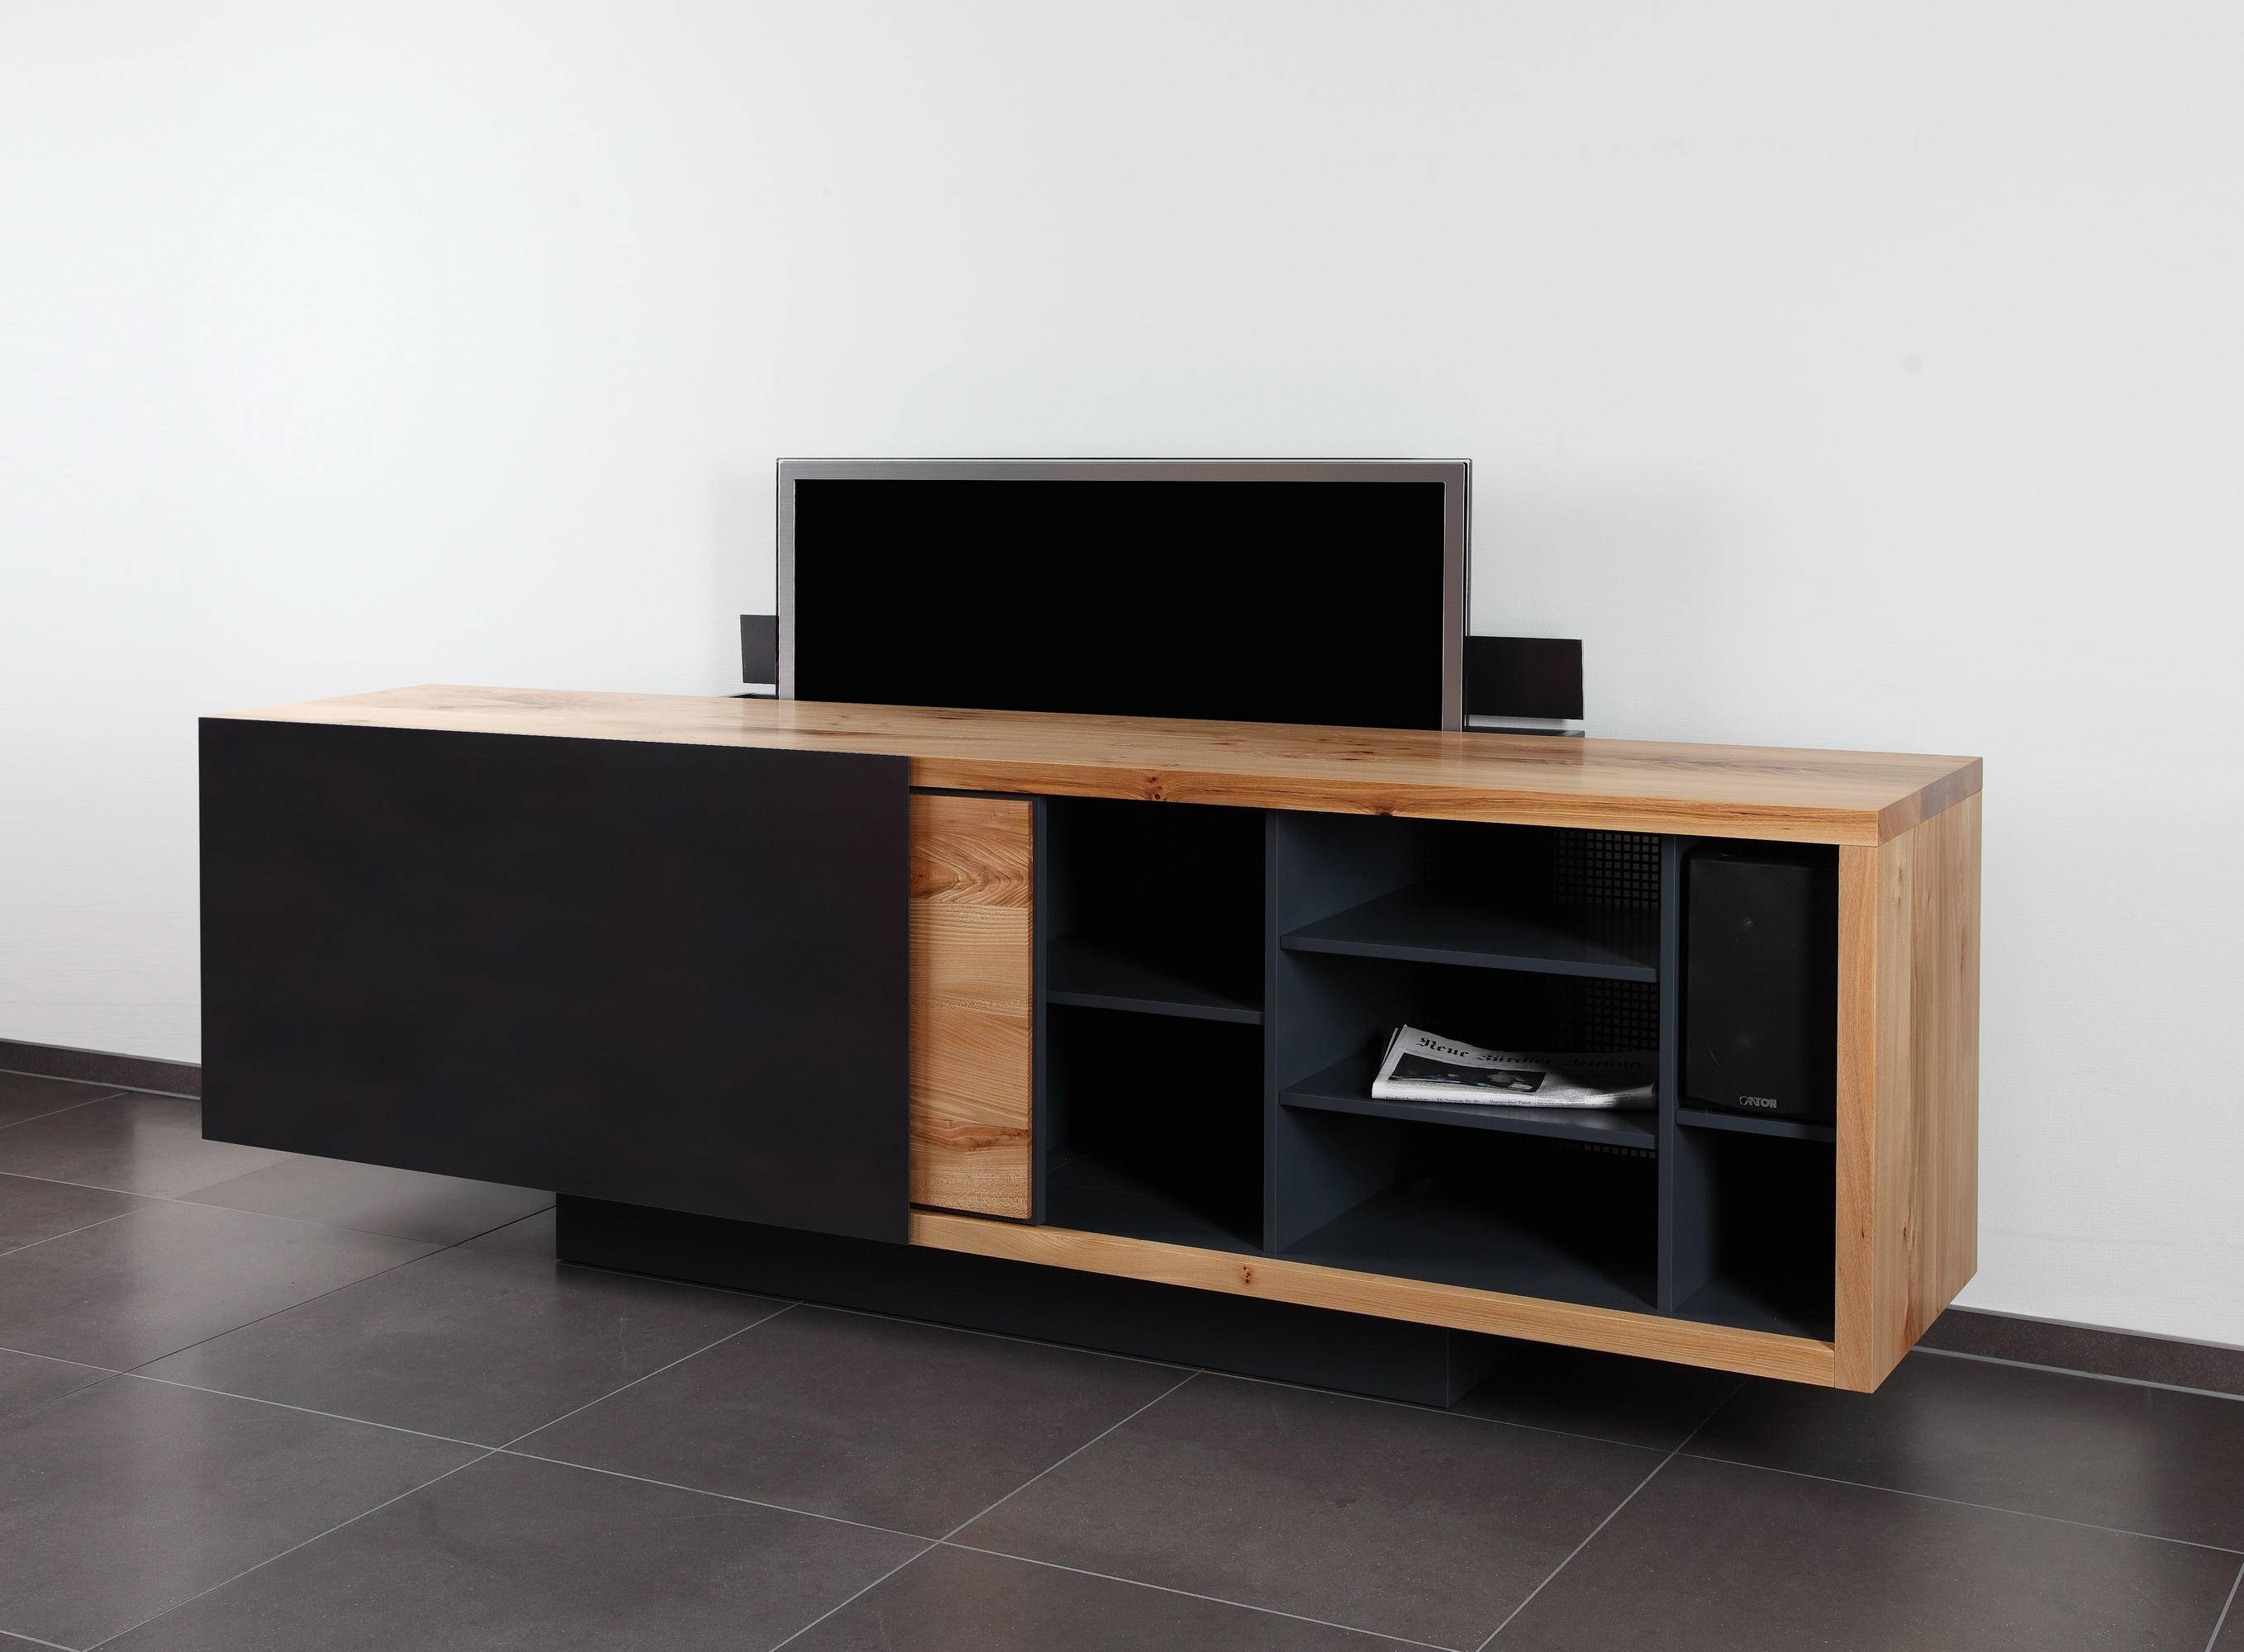 Ign. B2. Tv. Sideboard. - Multimedia Sideboards From Ign. Design in Tv Sideboards (Image 13 of 30)